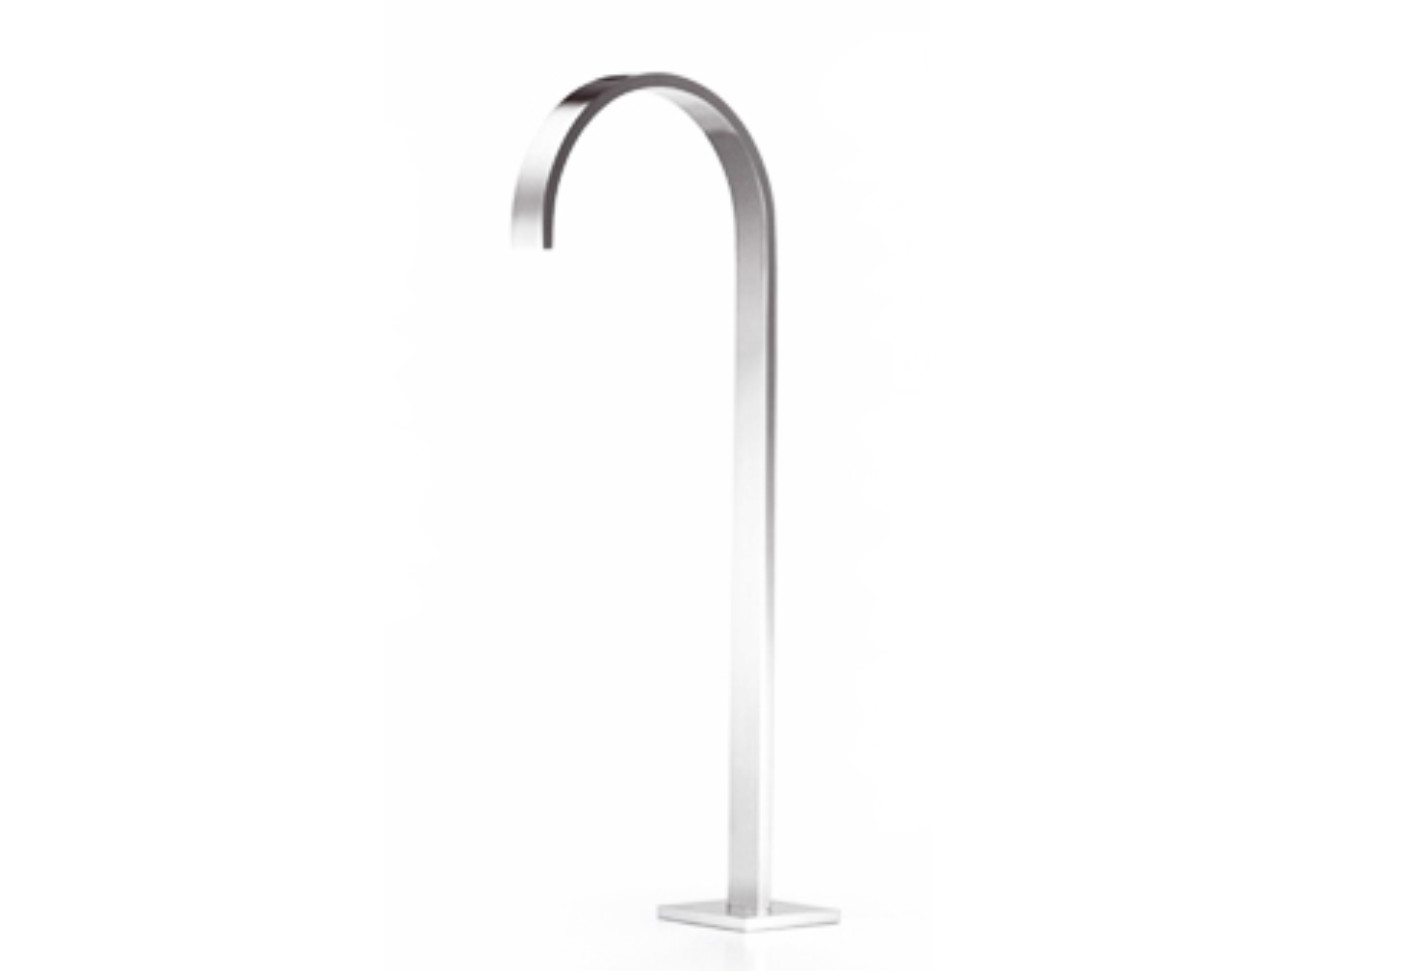 Dornbracht Mem Mem Bath Spout For Free Standing Assembly By Dornbracht Stylepark